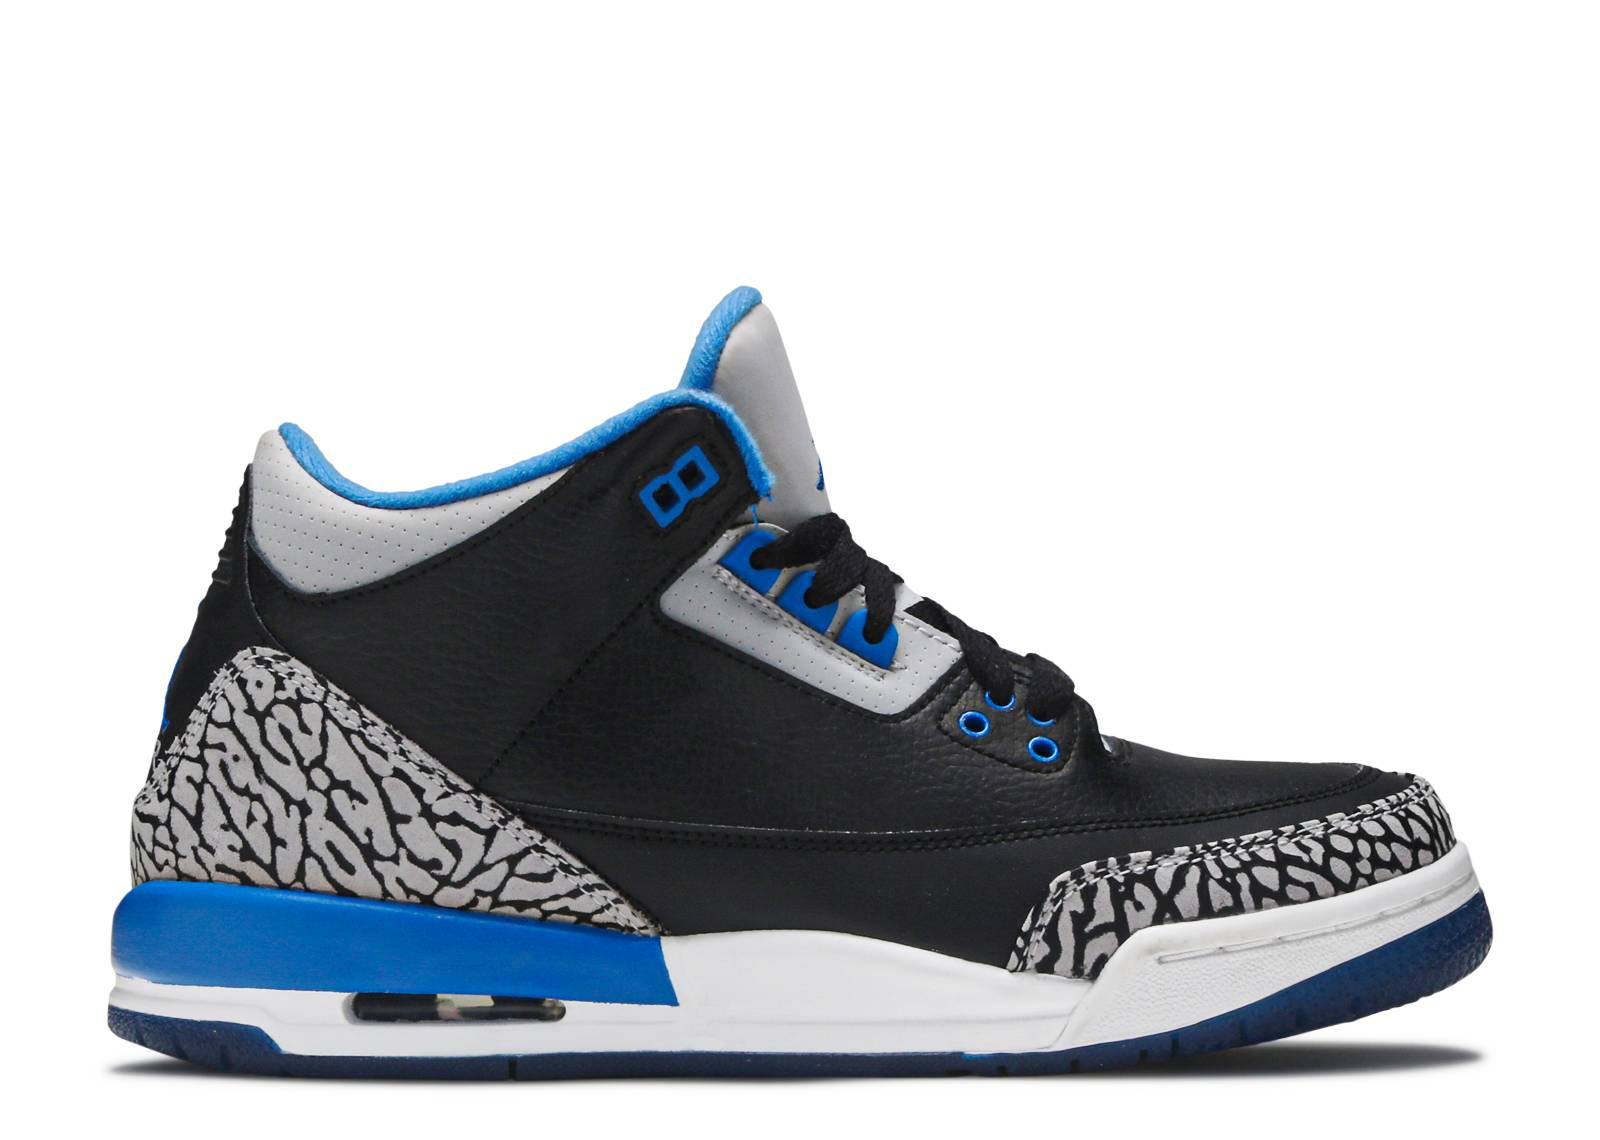 low priced 55e87 5ea62 Air Jordan 3 (III) Shoes - Nike | Flight Club